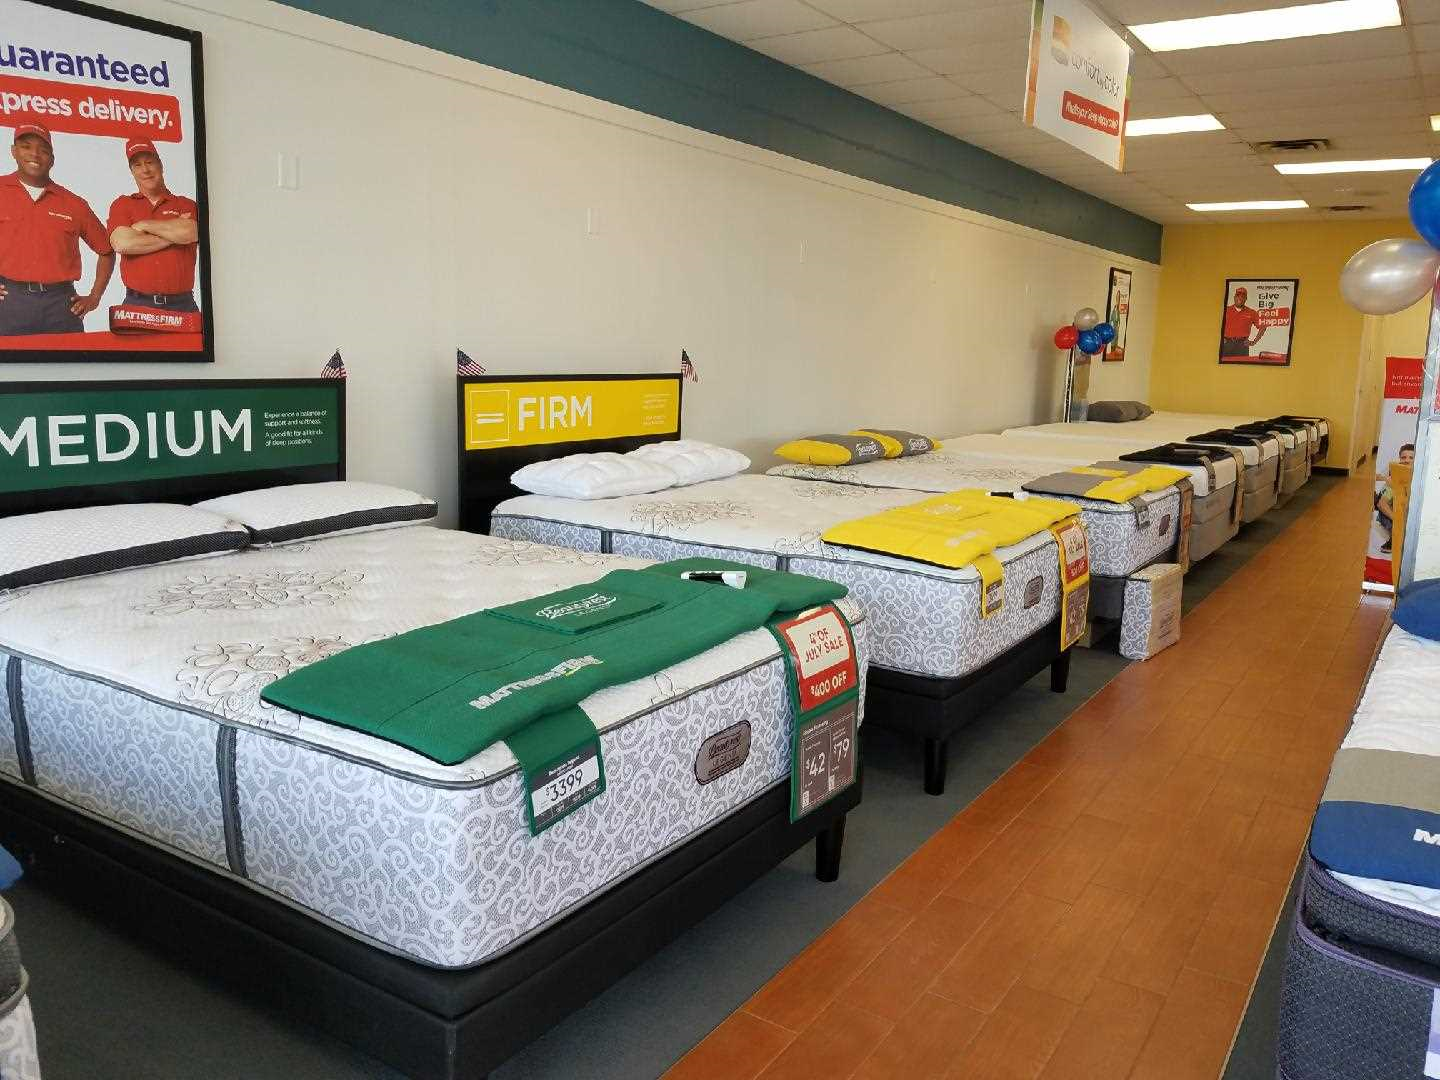 Mattress Firm Anderson image 2